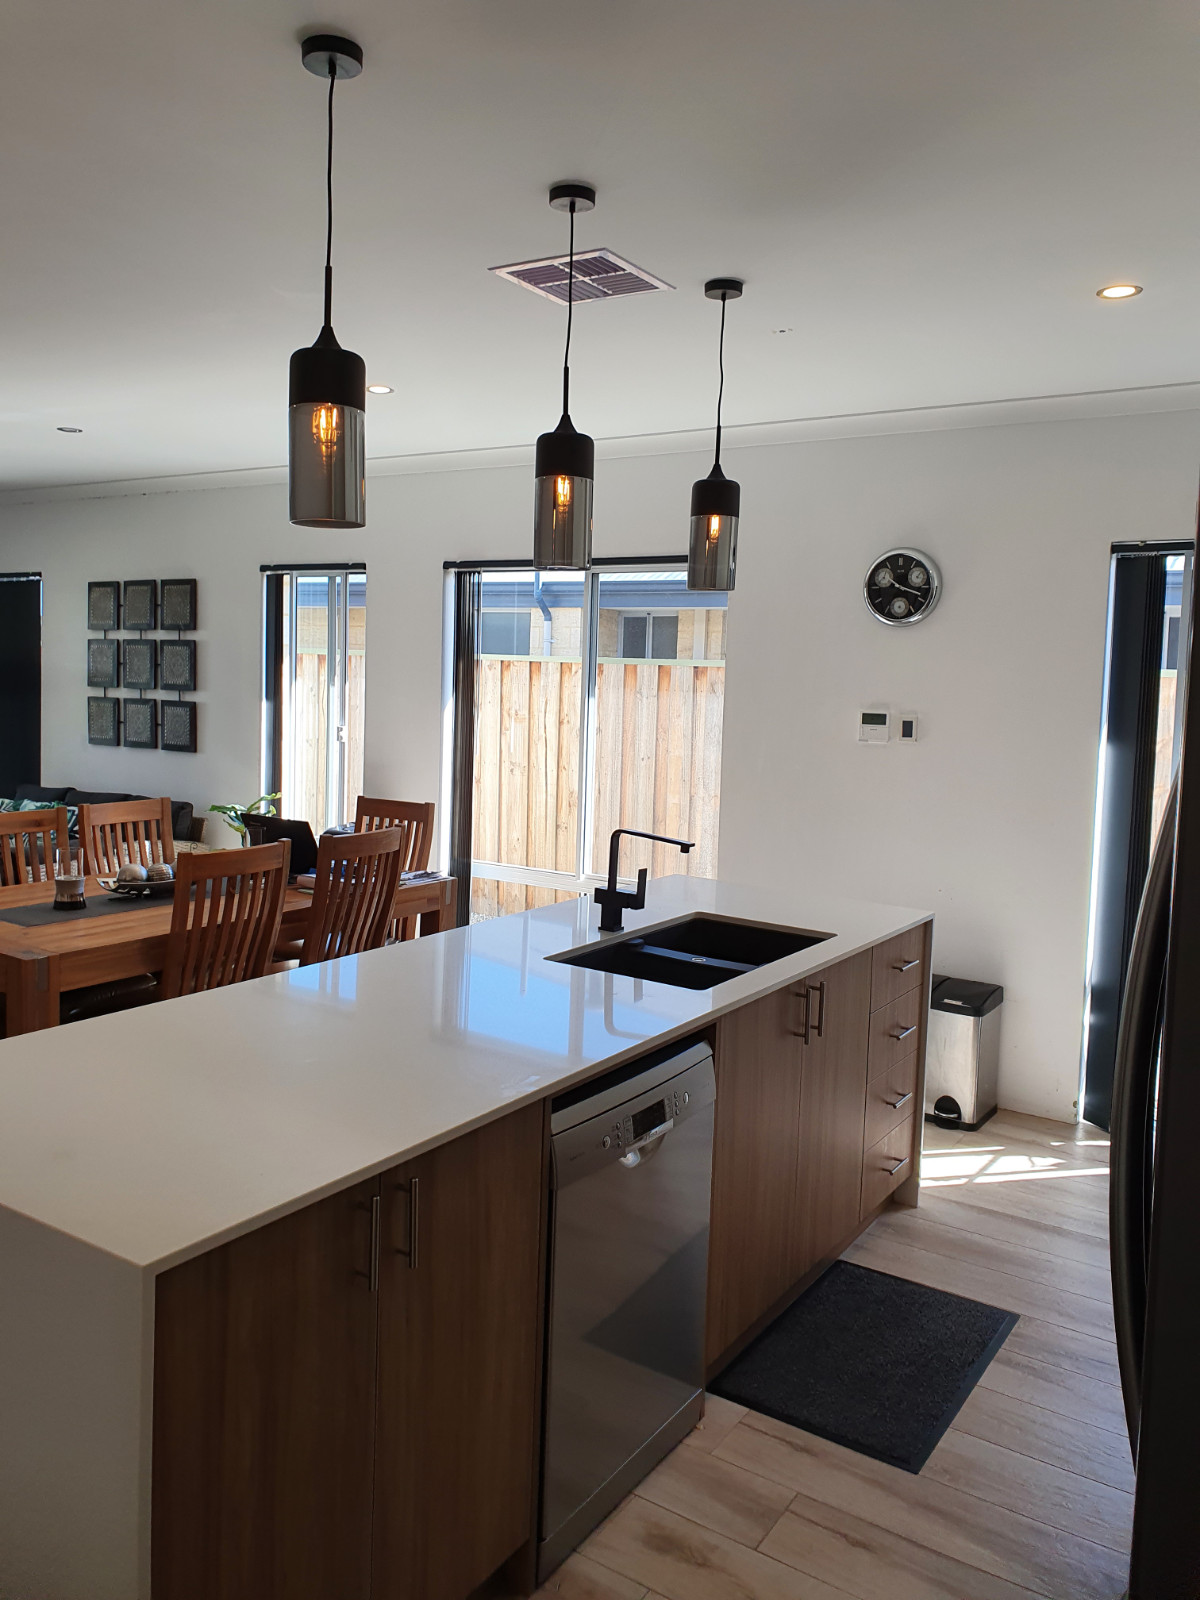 Pendants from Beacon Lighting. Installed by J & C Electrical Contracting. Perth Electrician